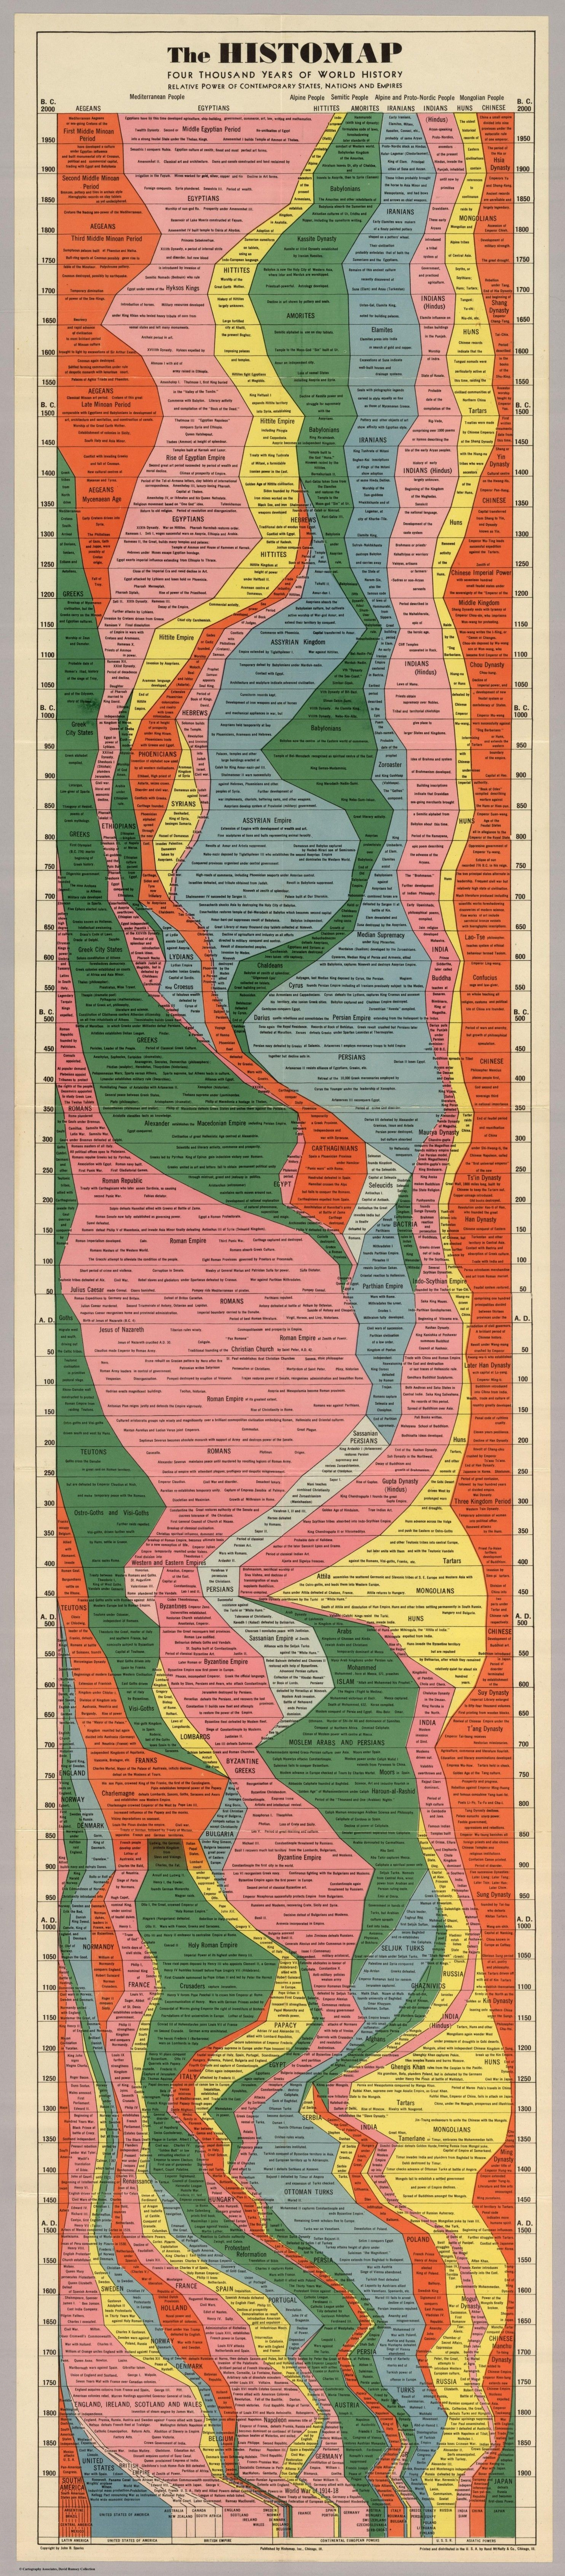 The entire history of the world, in 1 chart